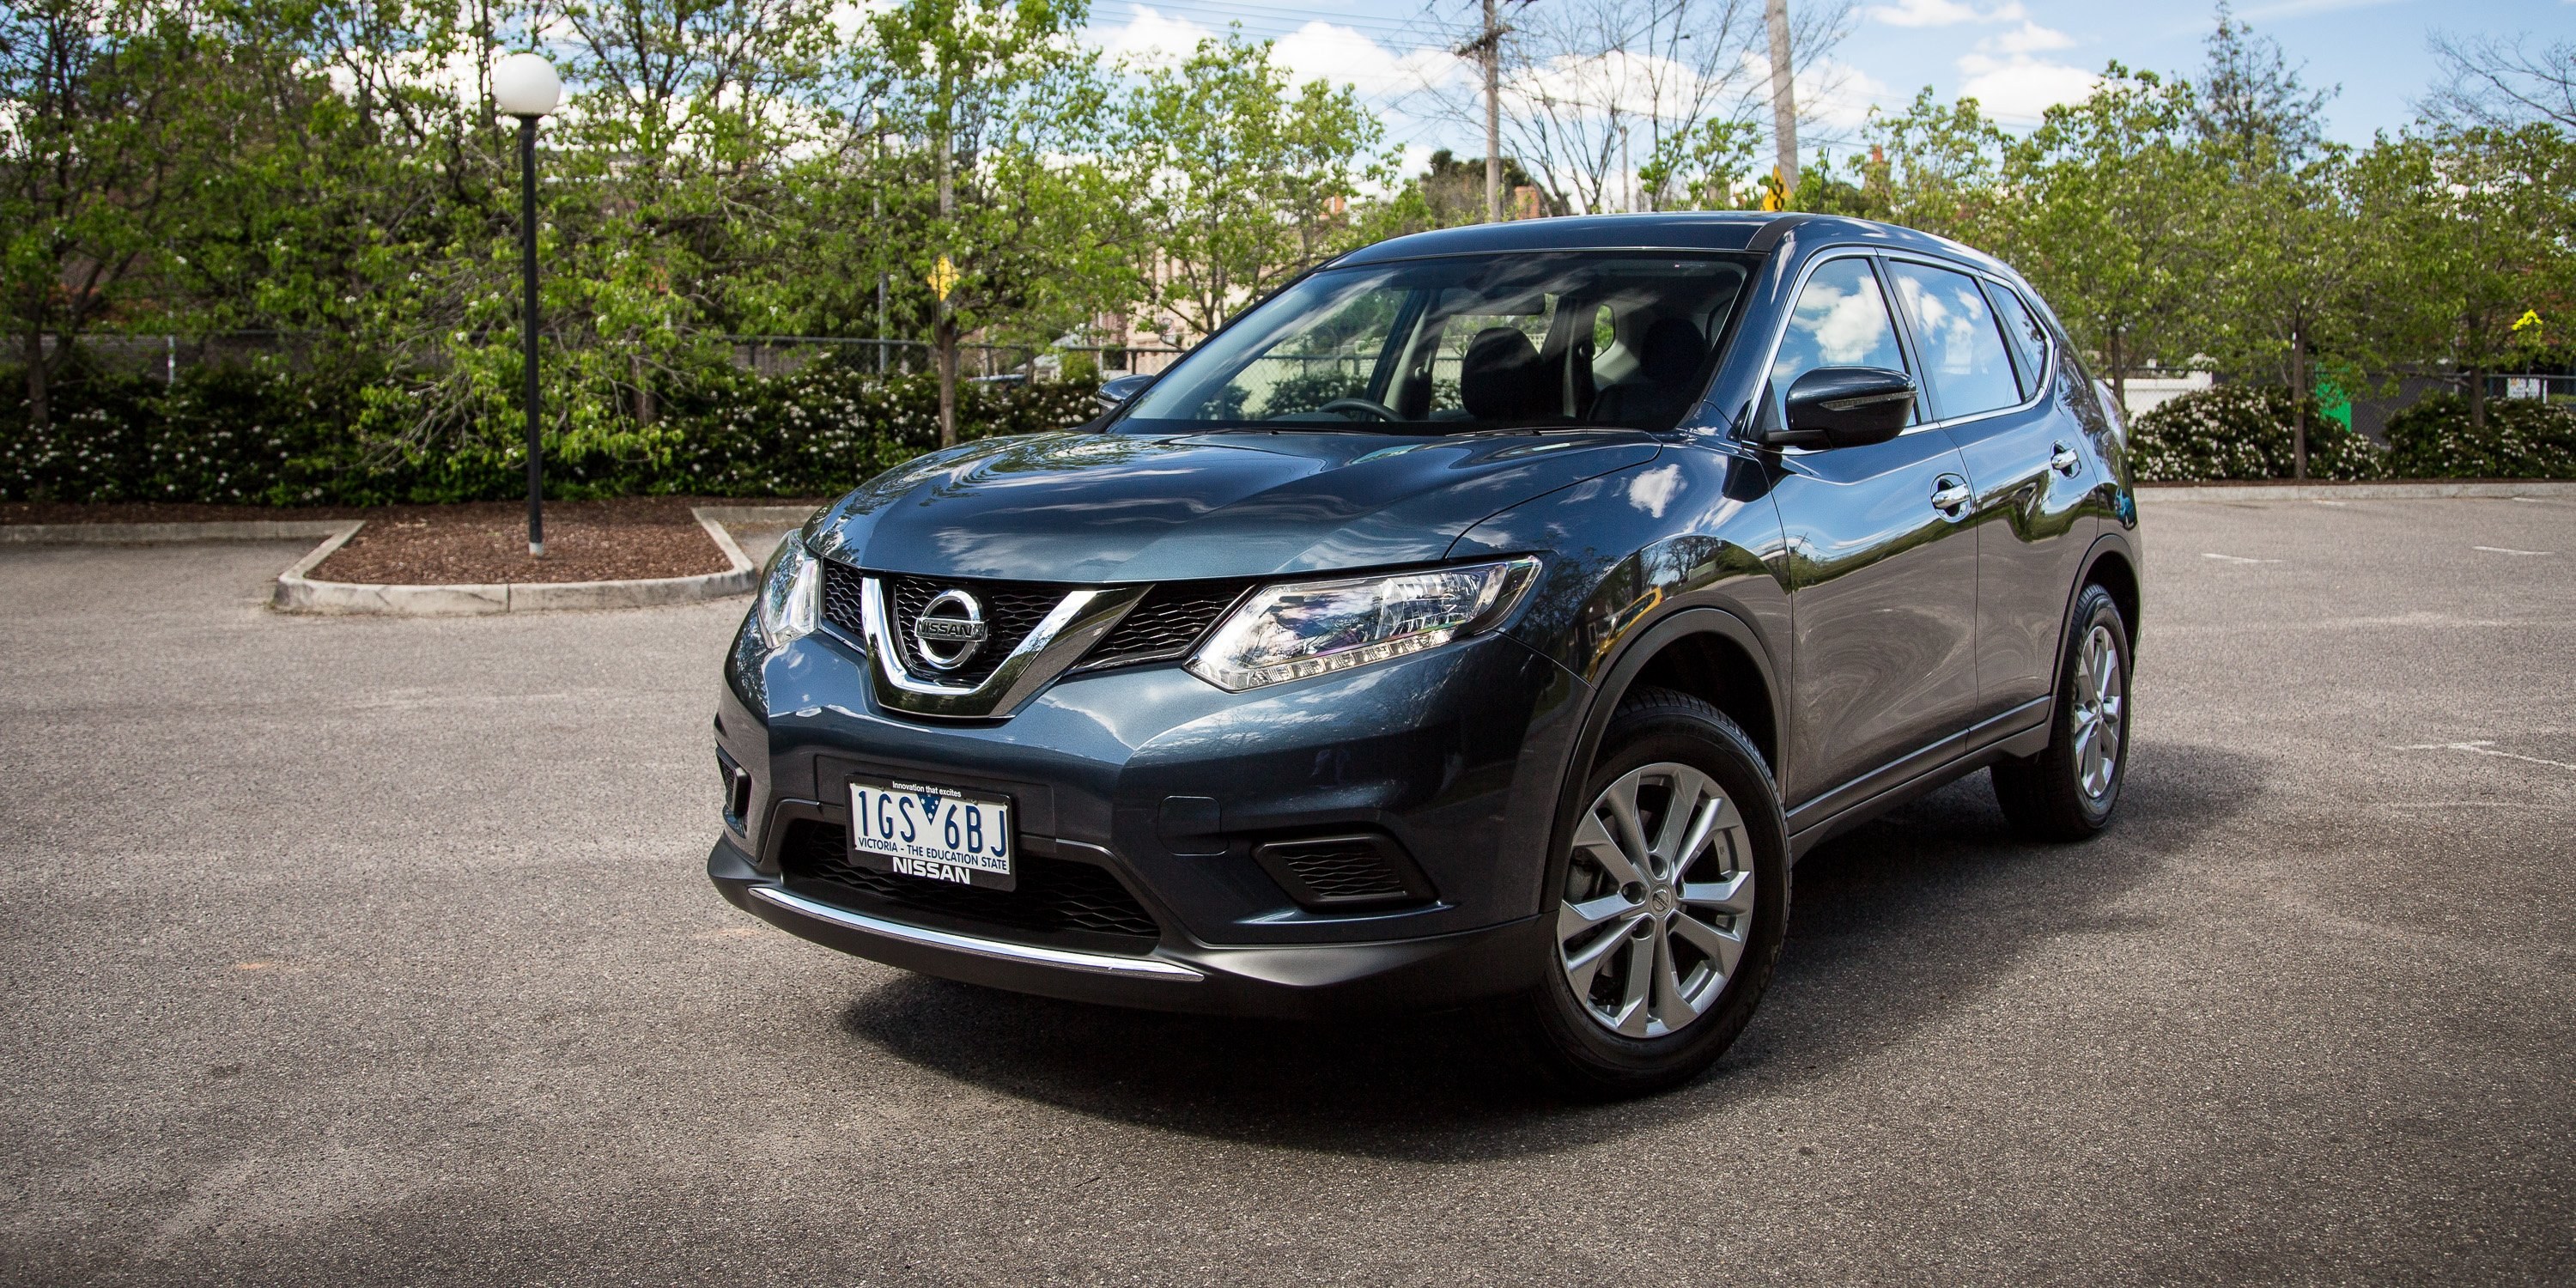 2016 nissan x trail st awd review photos caradvice. Black Bedroom Furniture Sets. Home Design Ideas